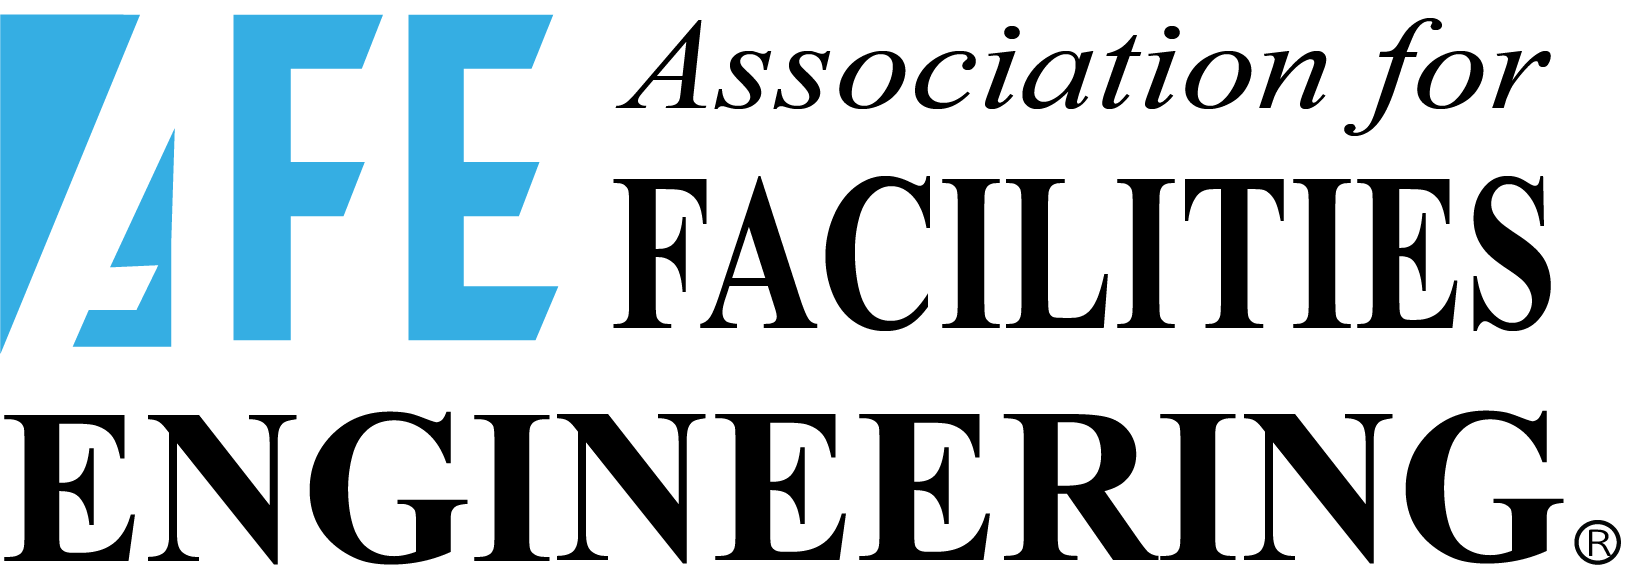 Association of Facilities Engineering